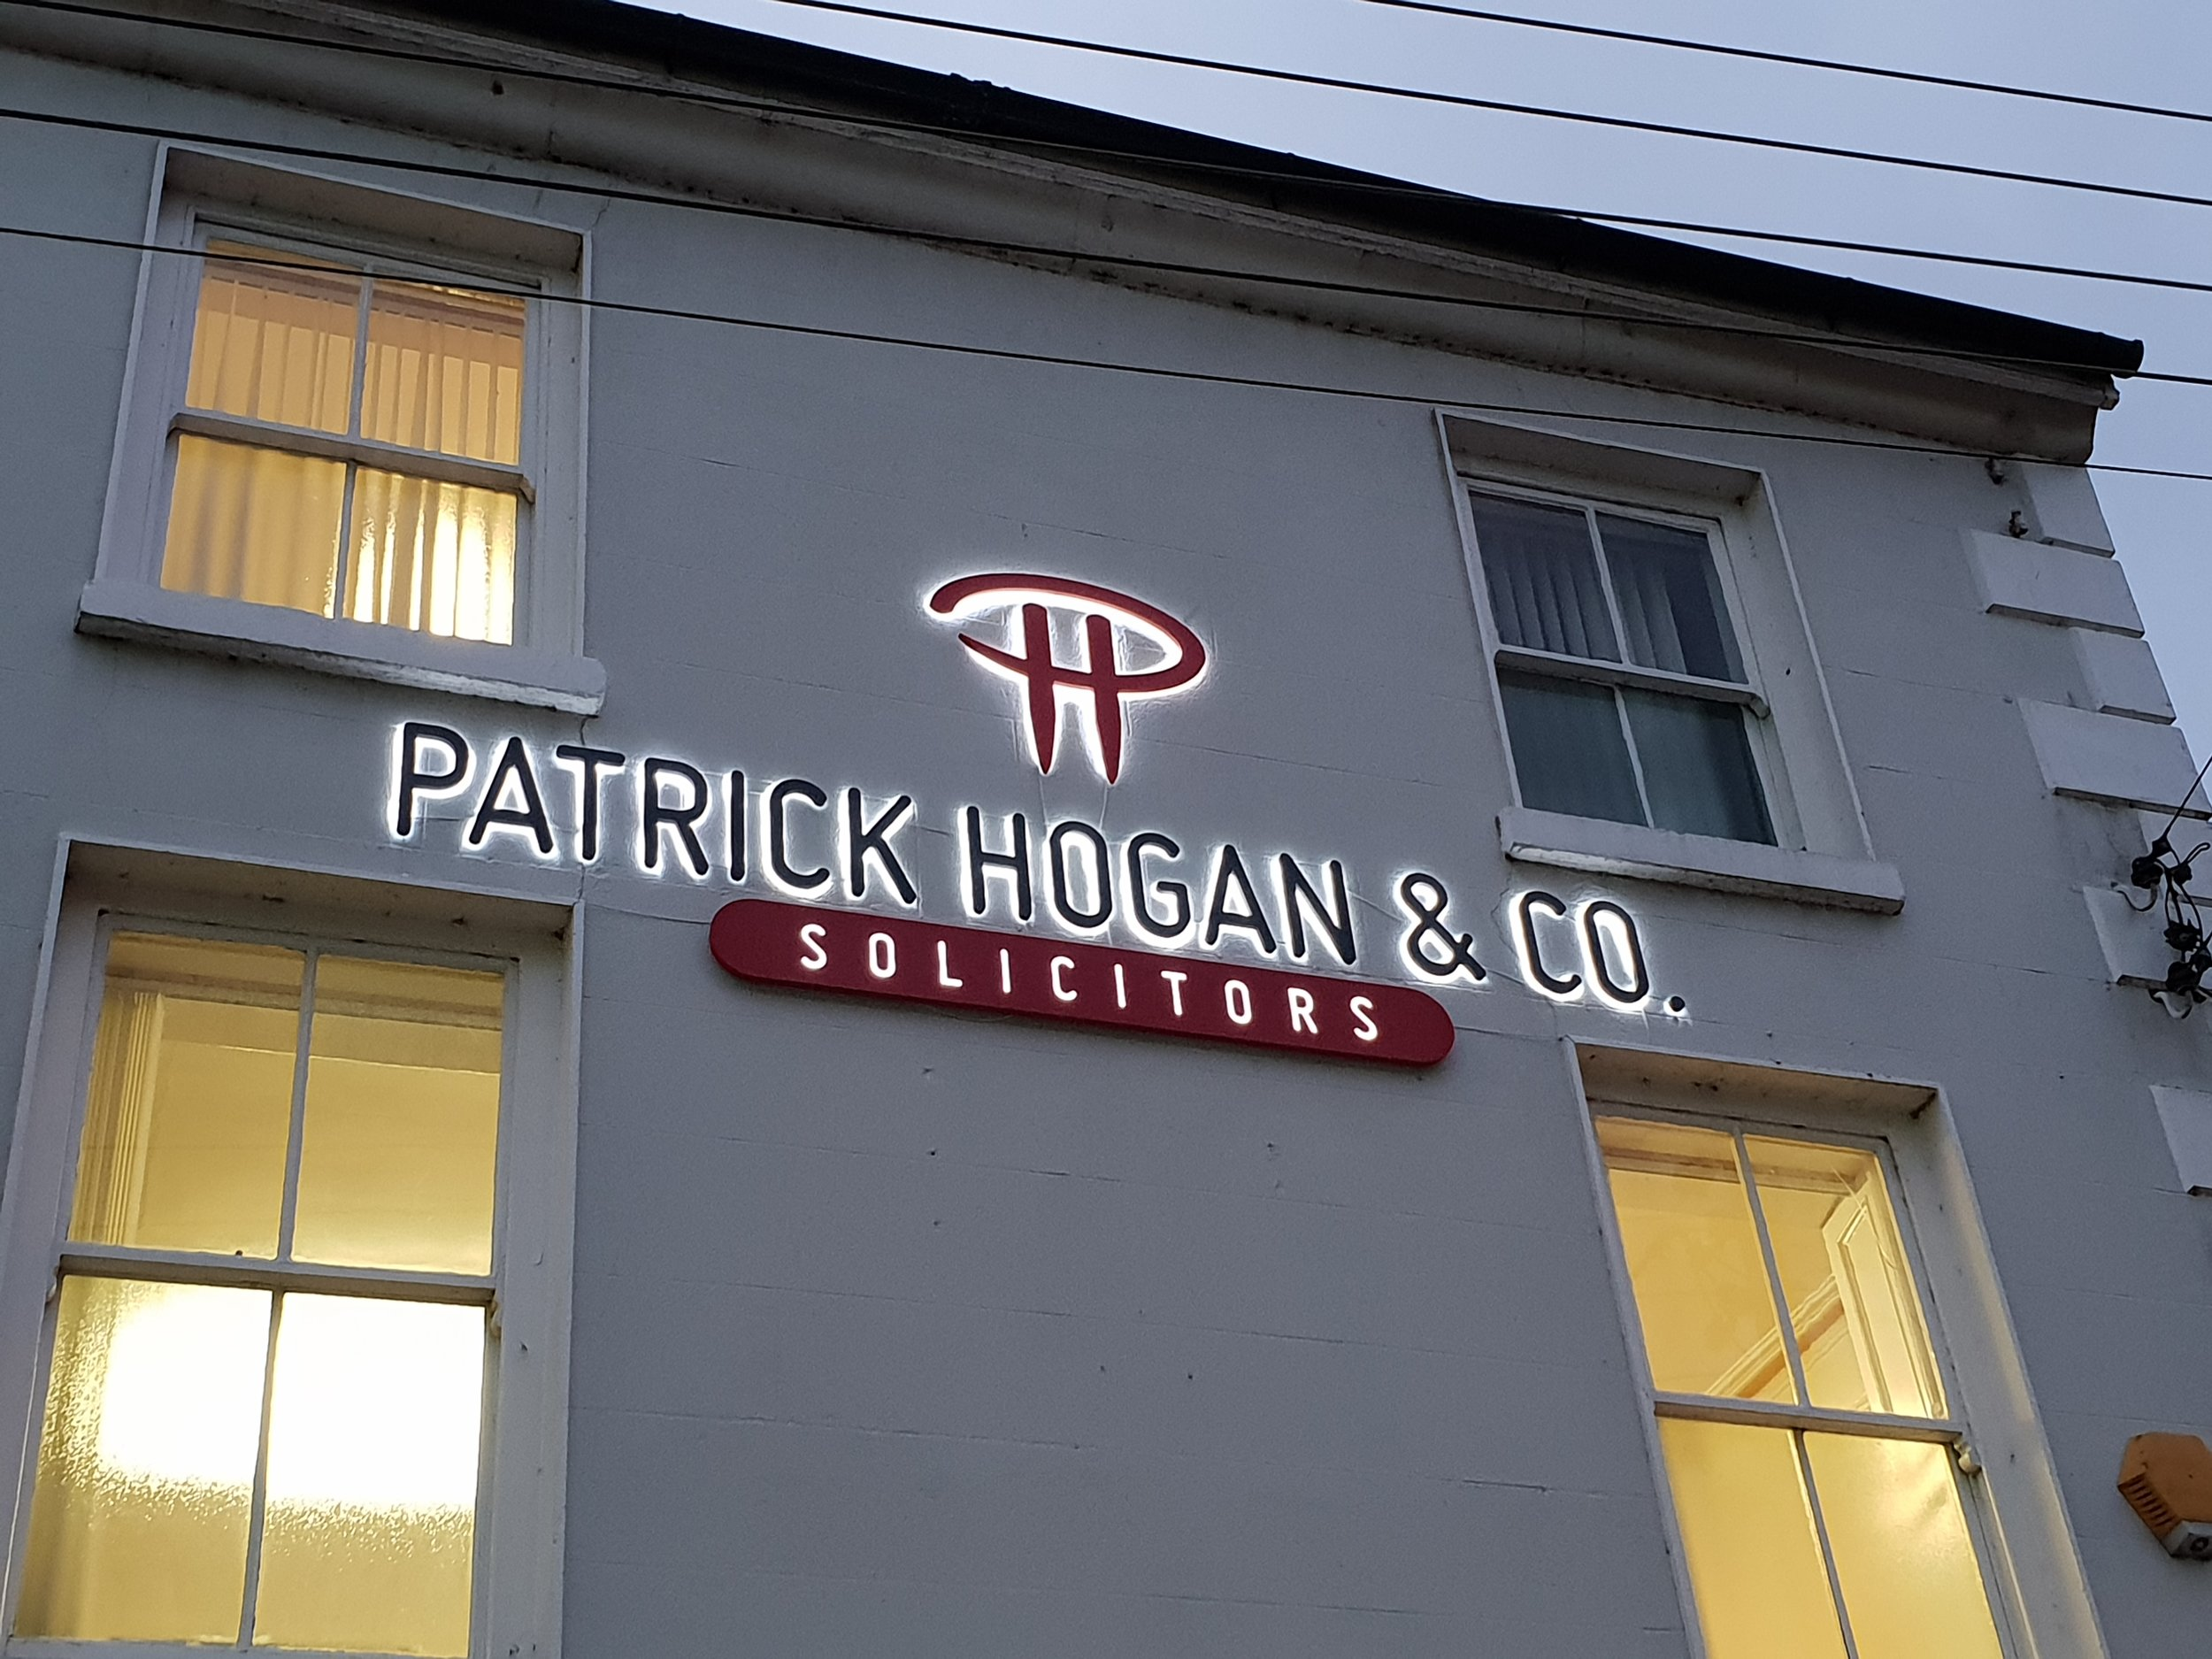 Patrick Hogan & Co Solicitors